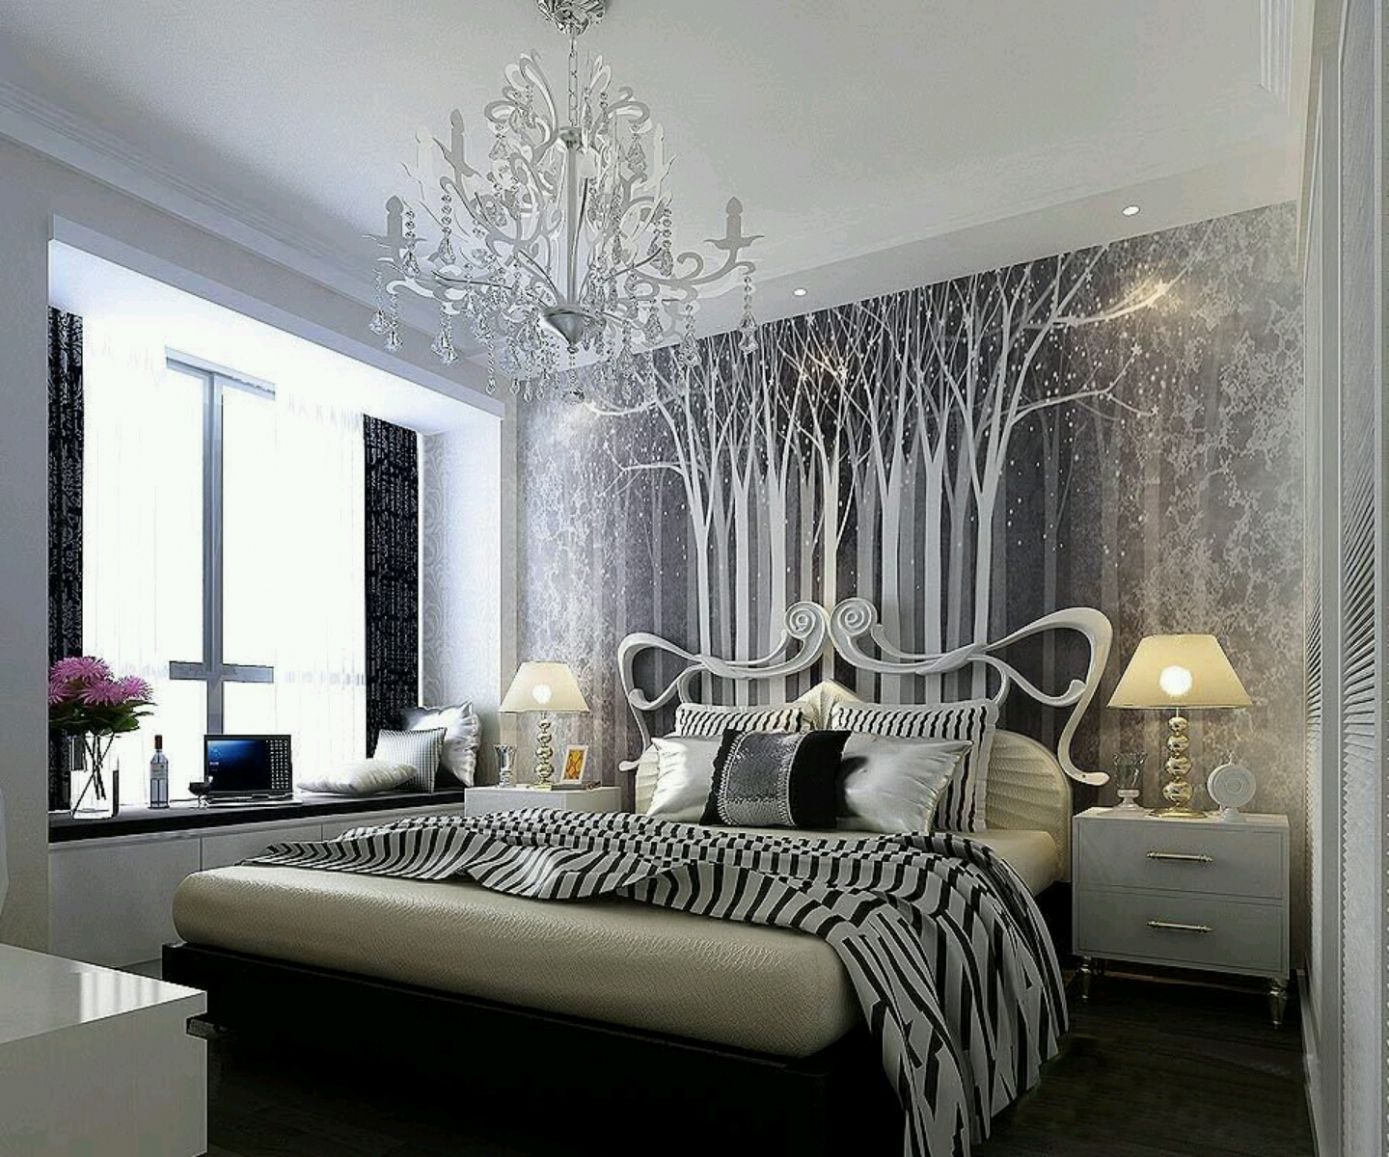 2019 Nice Bedroom Decorations - Best Interior Paint Brand Check more ...